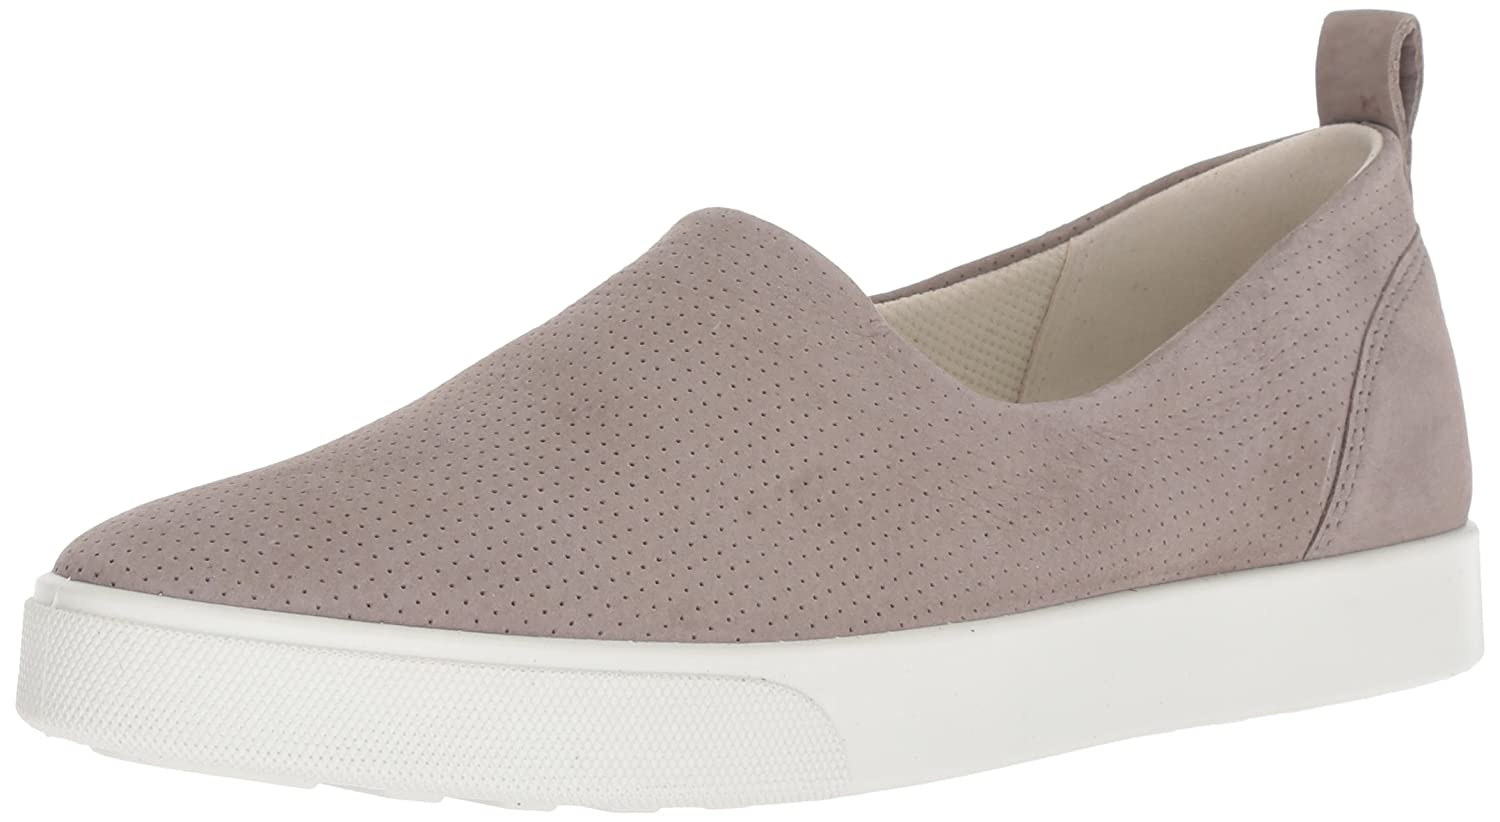 Warm Grey ECCO Womens Gillian Casual Slip on Sneaker